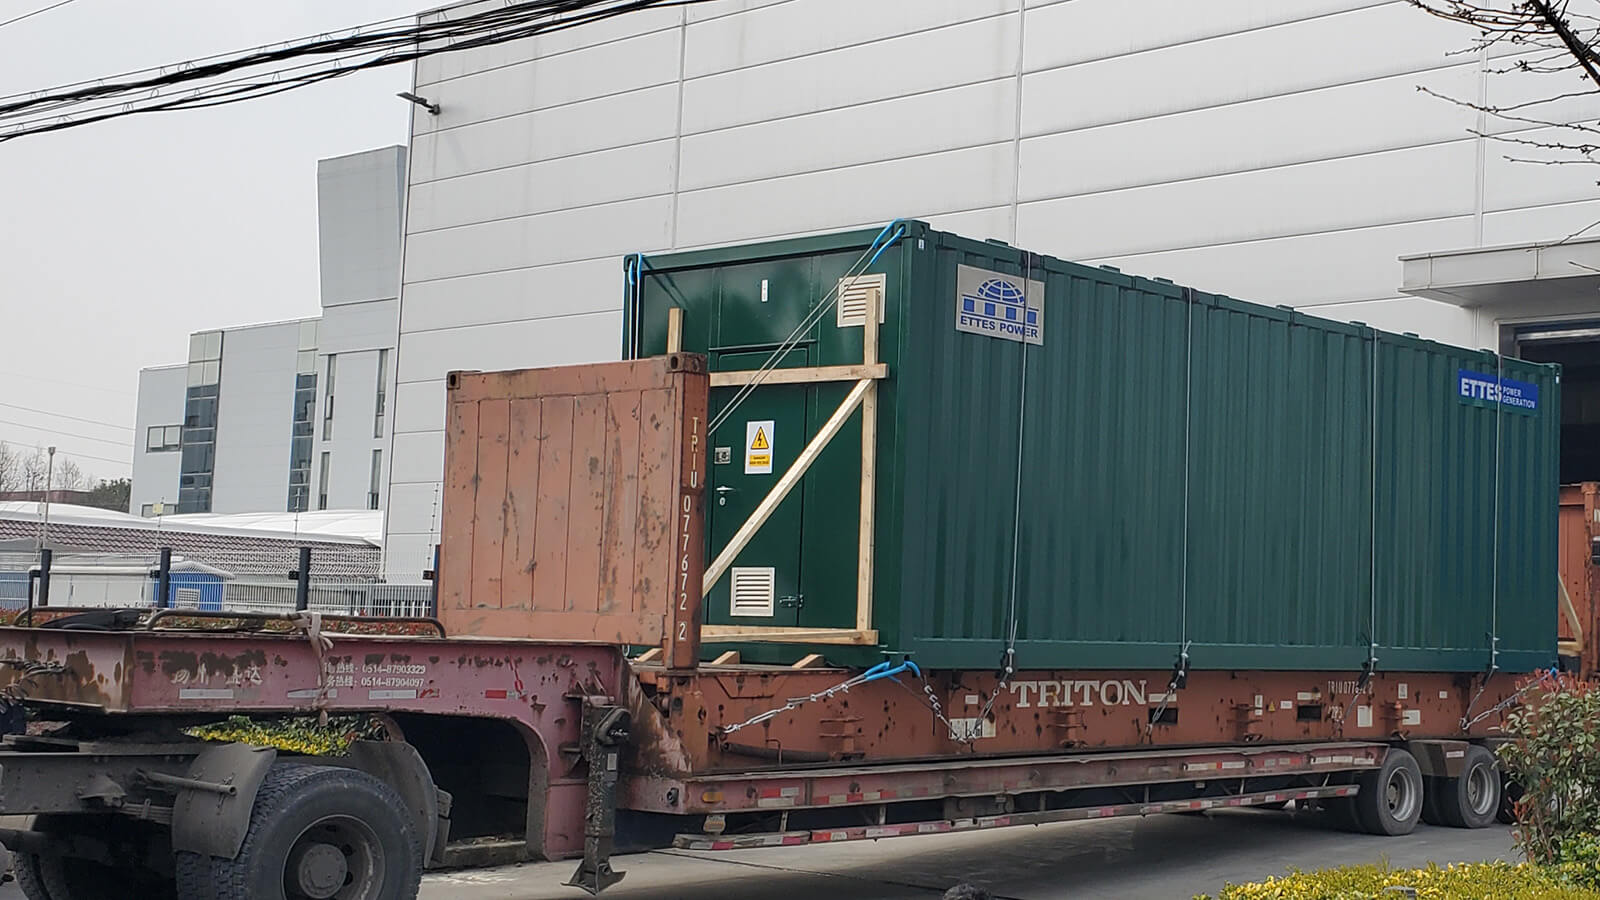 MAN Biogas Generator & CHPs are Transported to the Port in a Frame Container ETTES POWER